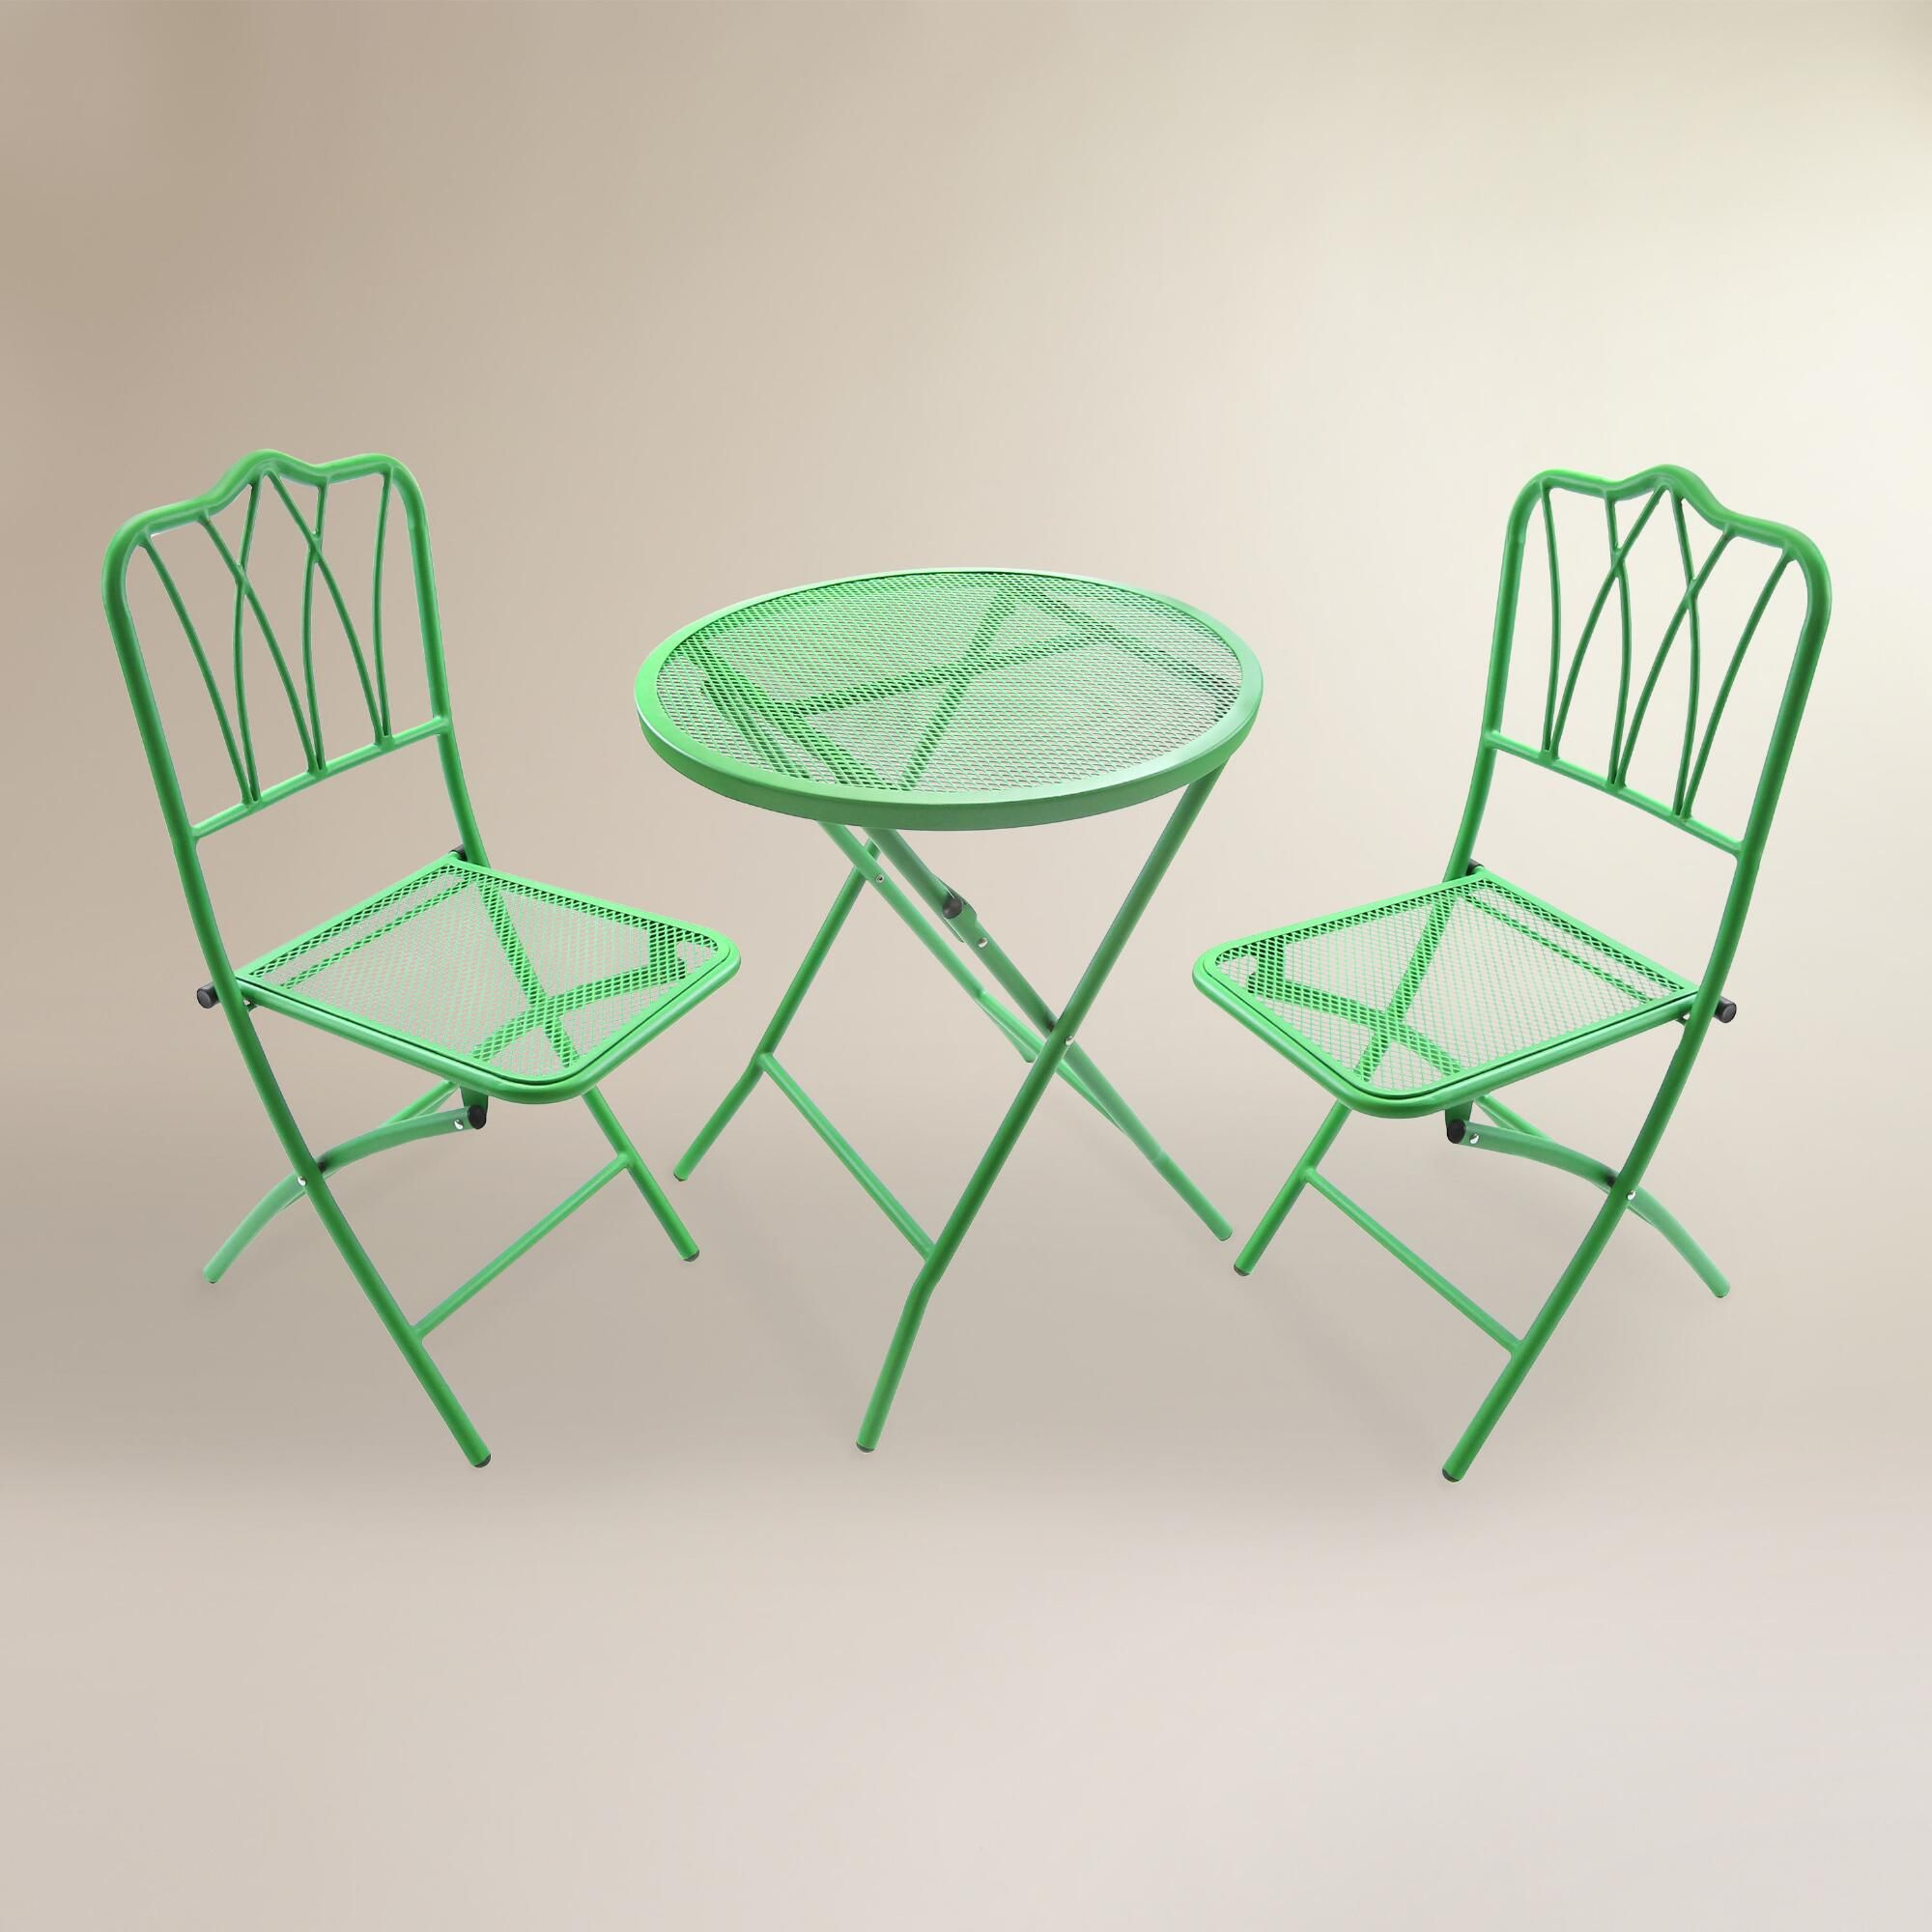 green metal bistro chairs outdoor wood lounge chair finished in vibrant our set brings an iconic look and a pop of color to your garden or patio this fully assembled features table